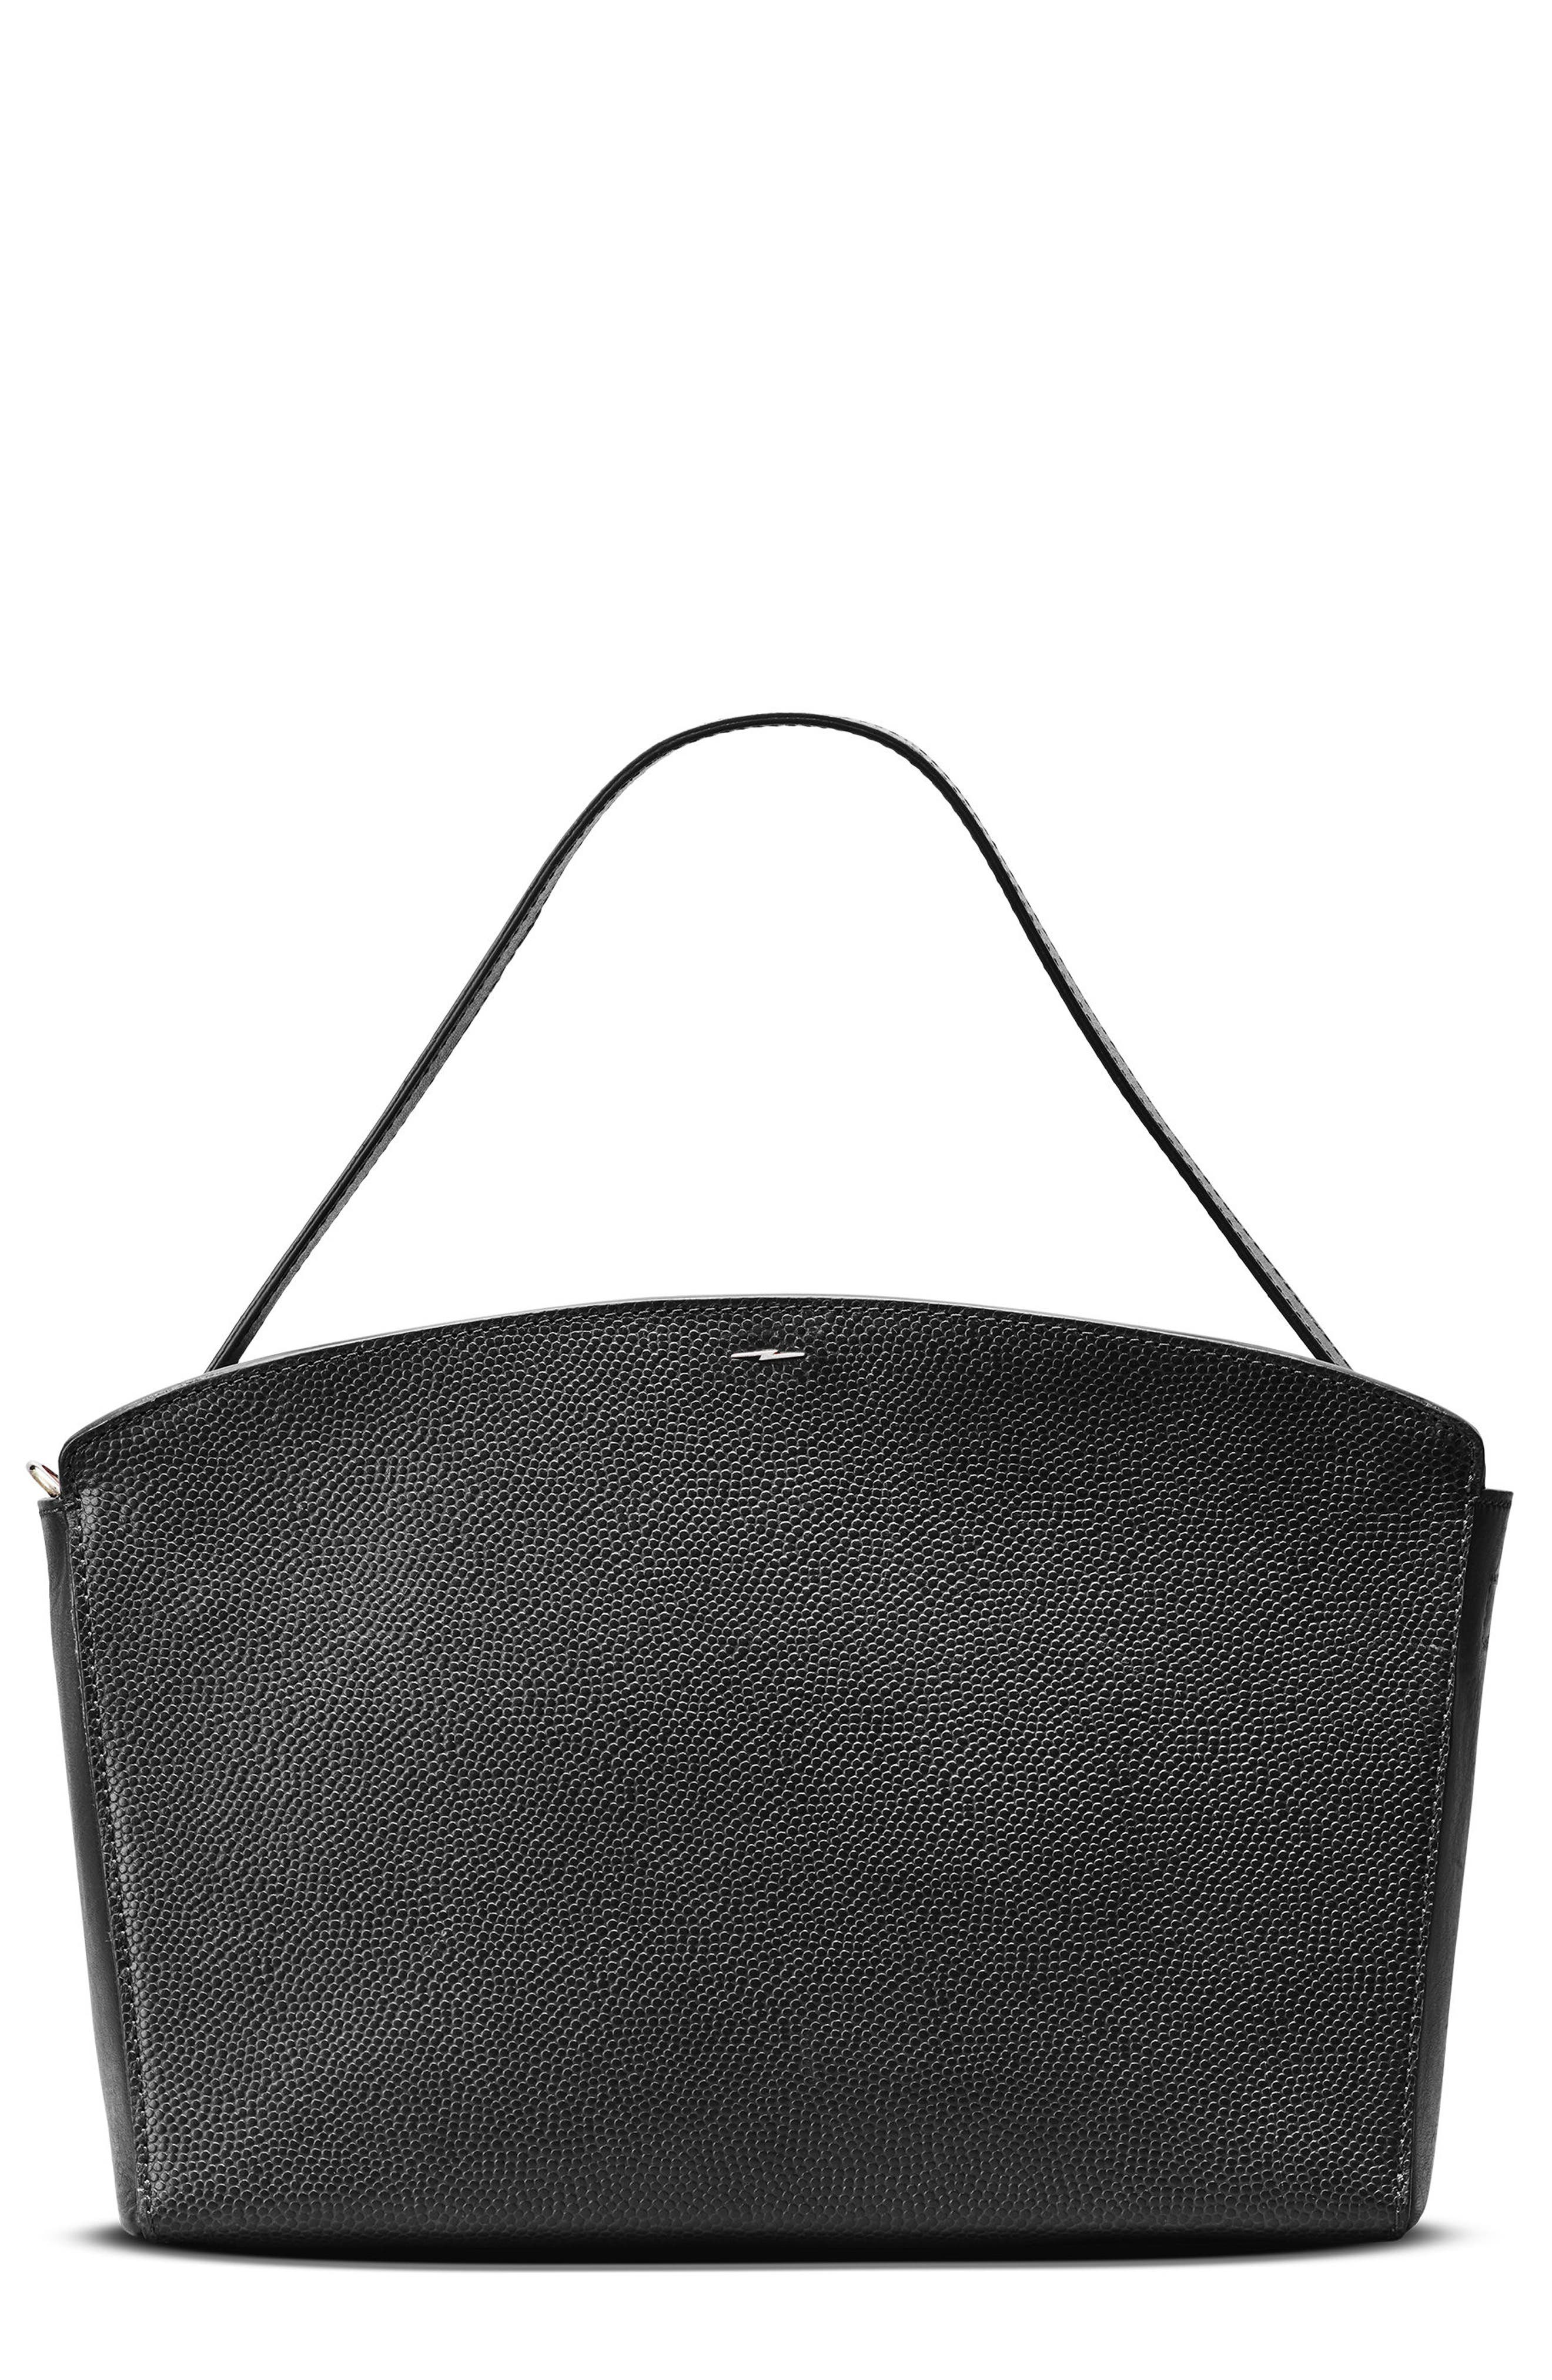 Curved Latigo Leather Satchel,                         Main,                         color, Black